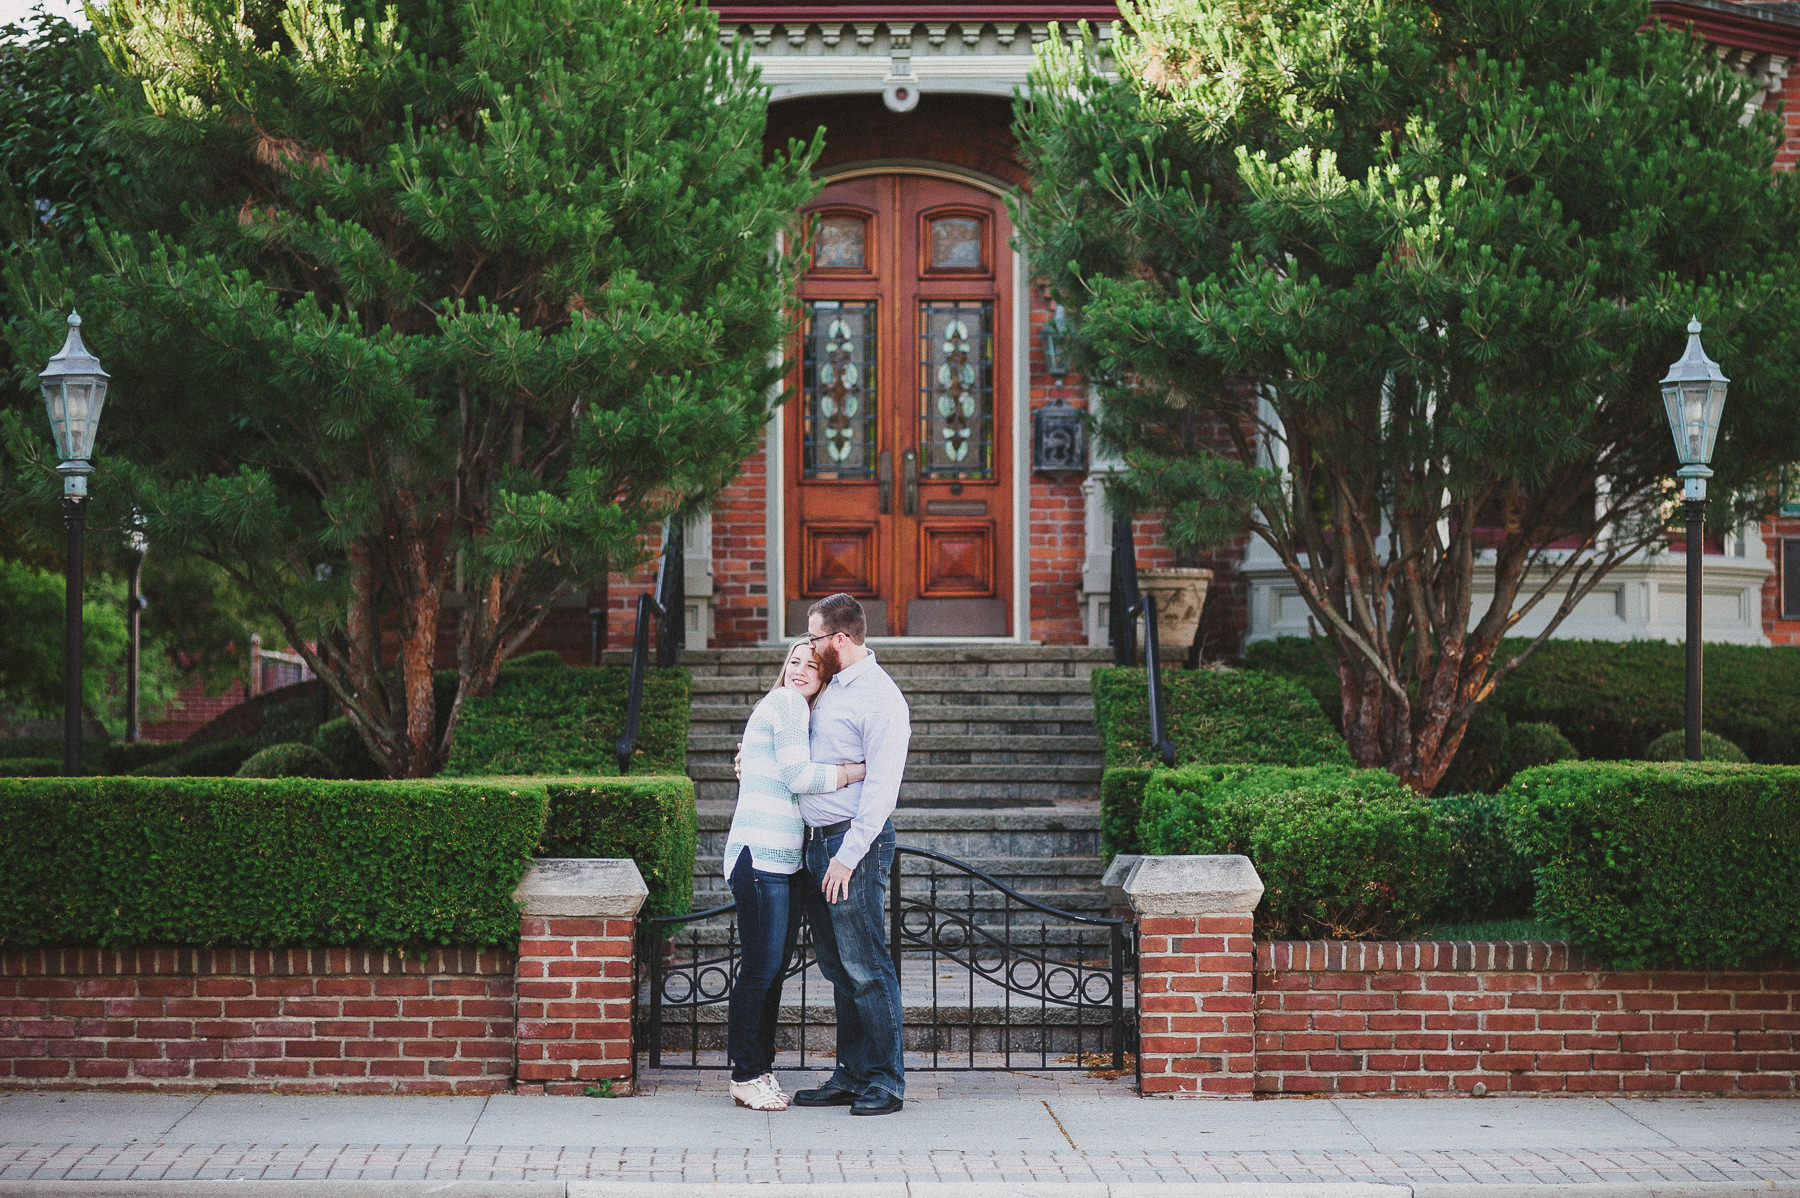 breighton-and-basette-photography-copyrighted-image-blog-kirsten-and-ryan-engagement-session-011.jpg